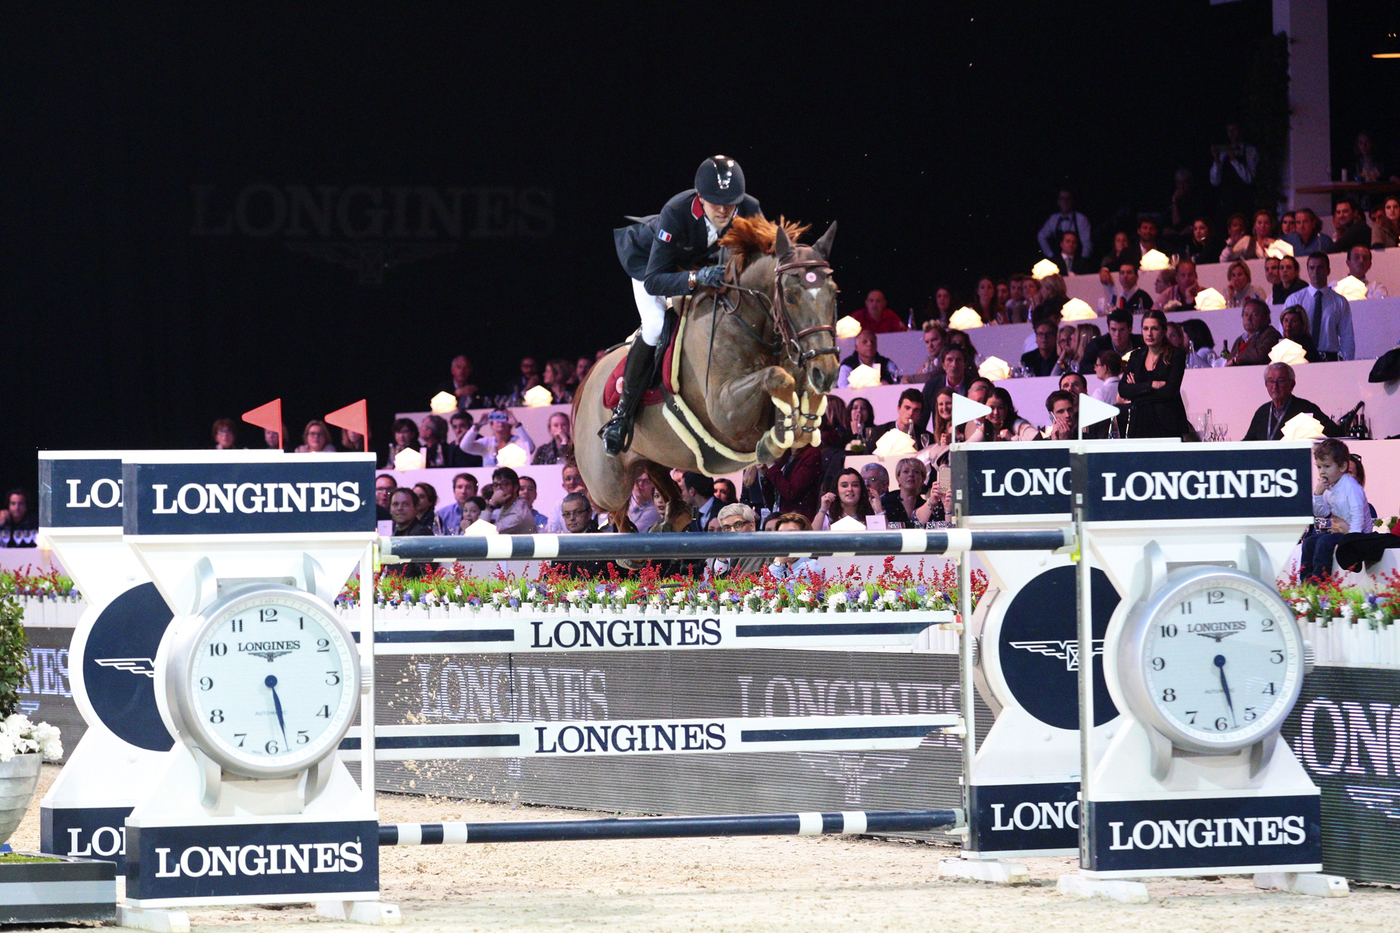 Longines Show Jumping Event: The Longines Masters of Paris: four days of high level show jumping competition in a glamorous atmosphere 3